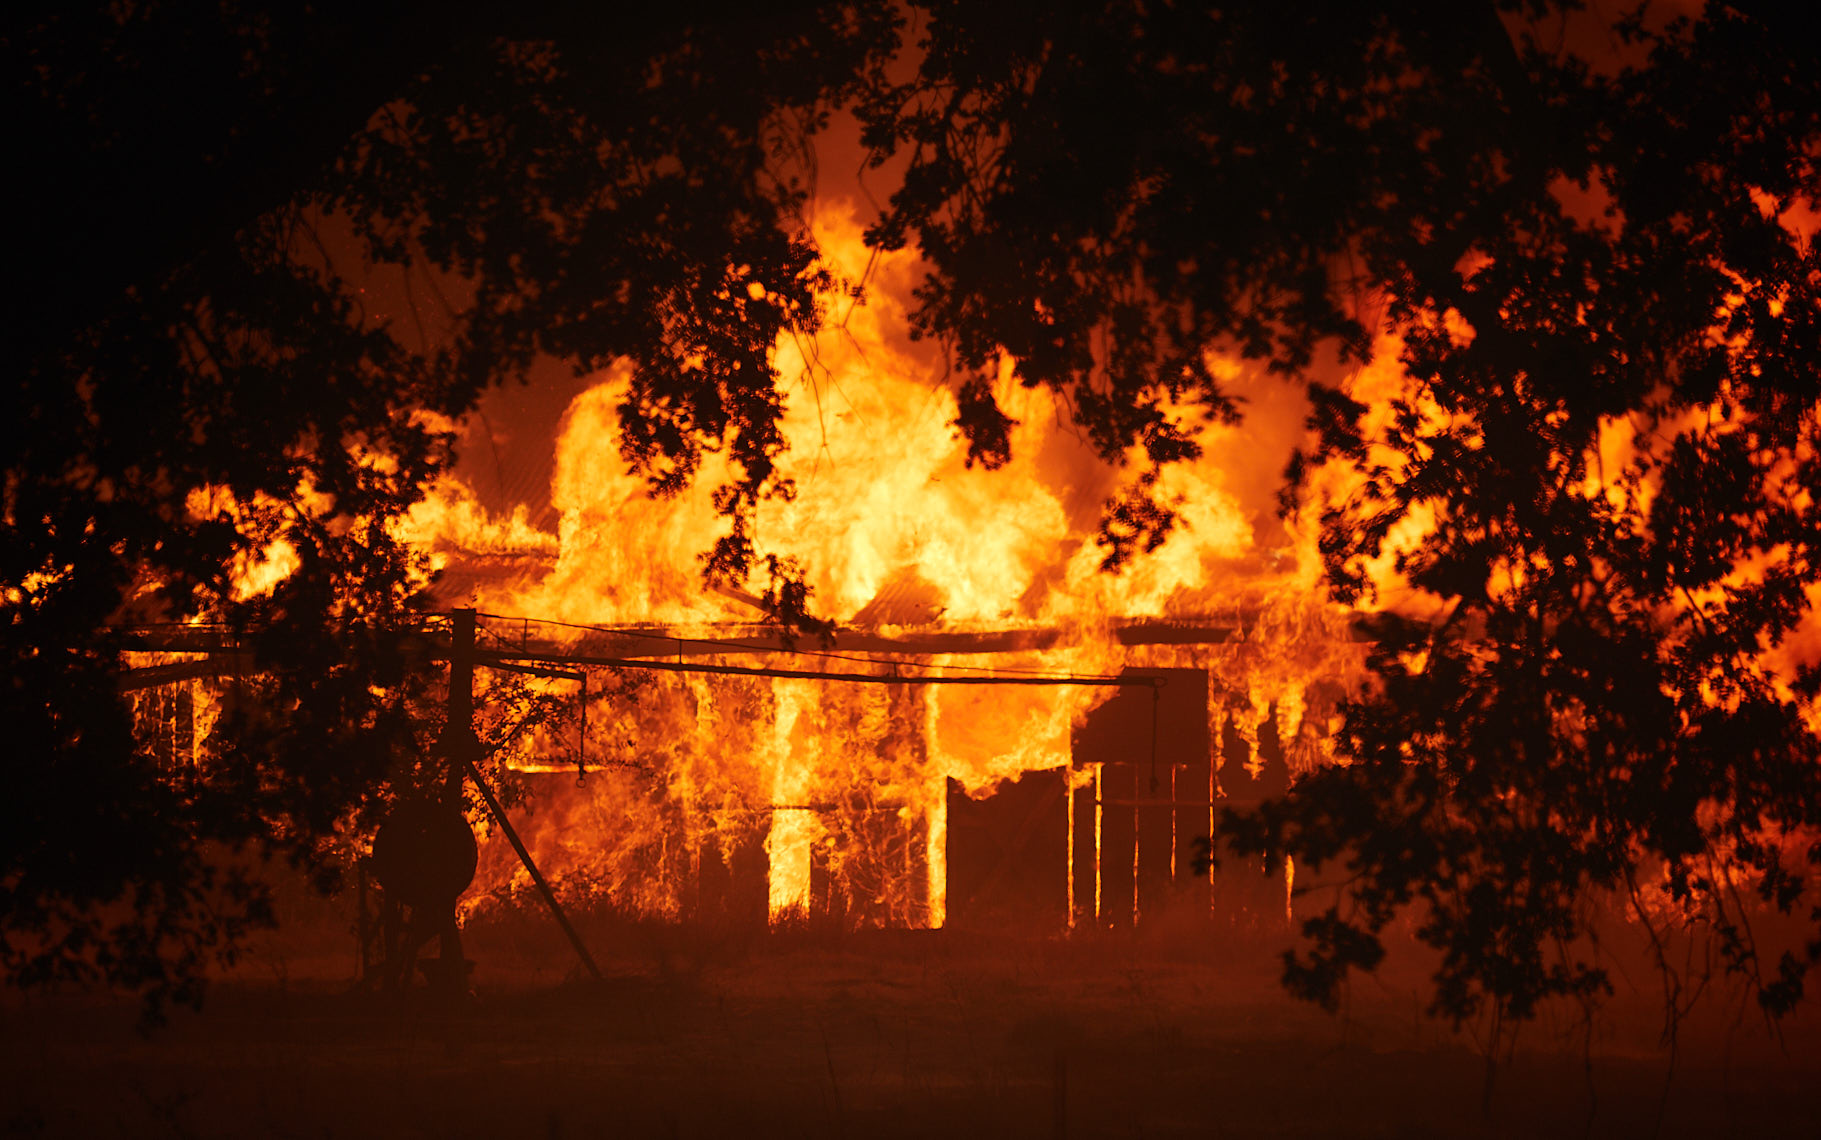 Fire Destroys a Home During Wildfire